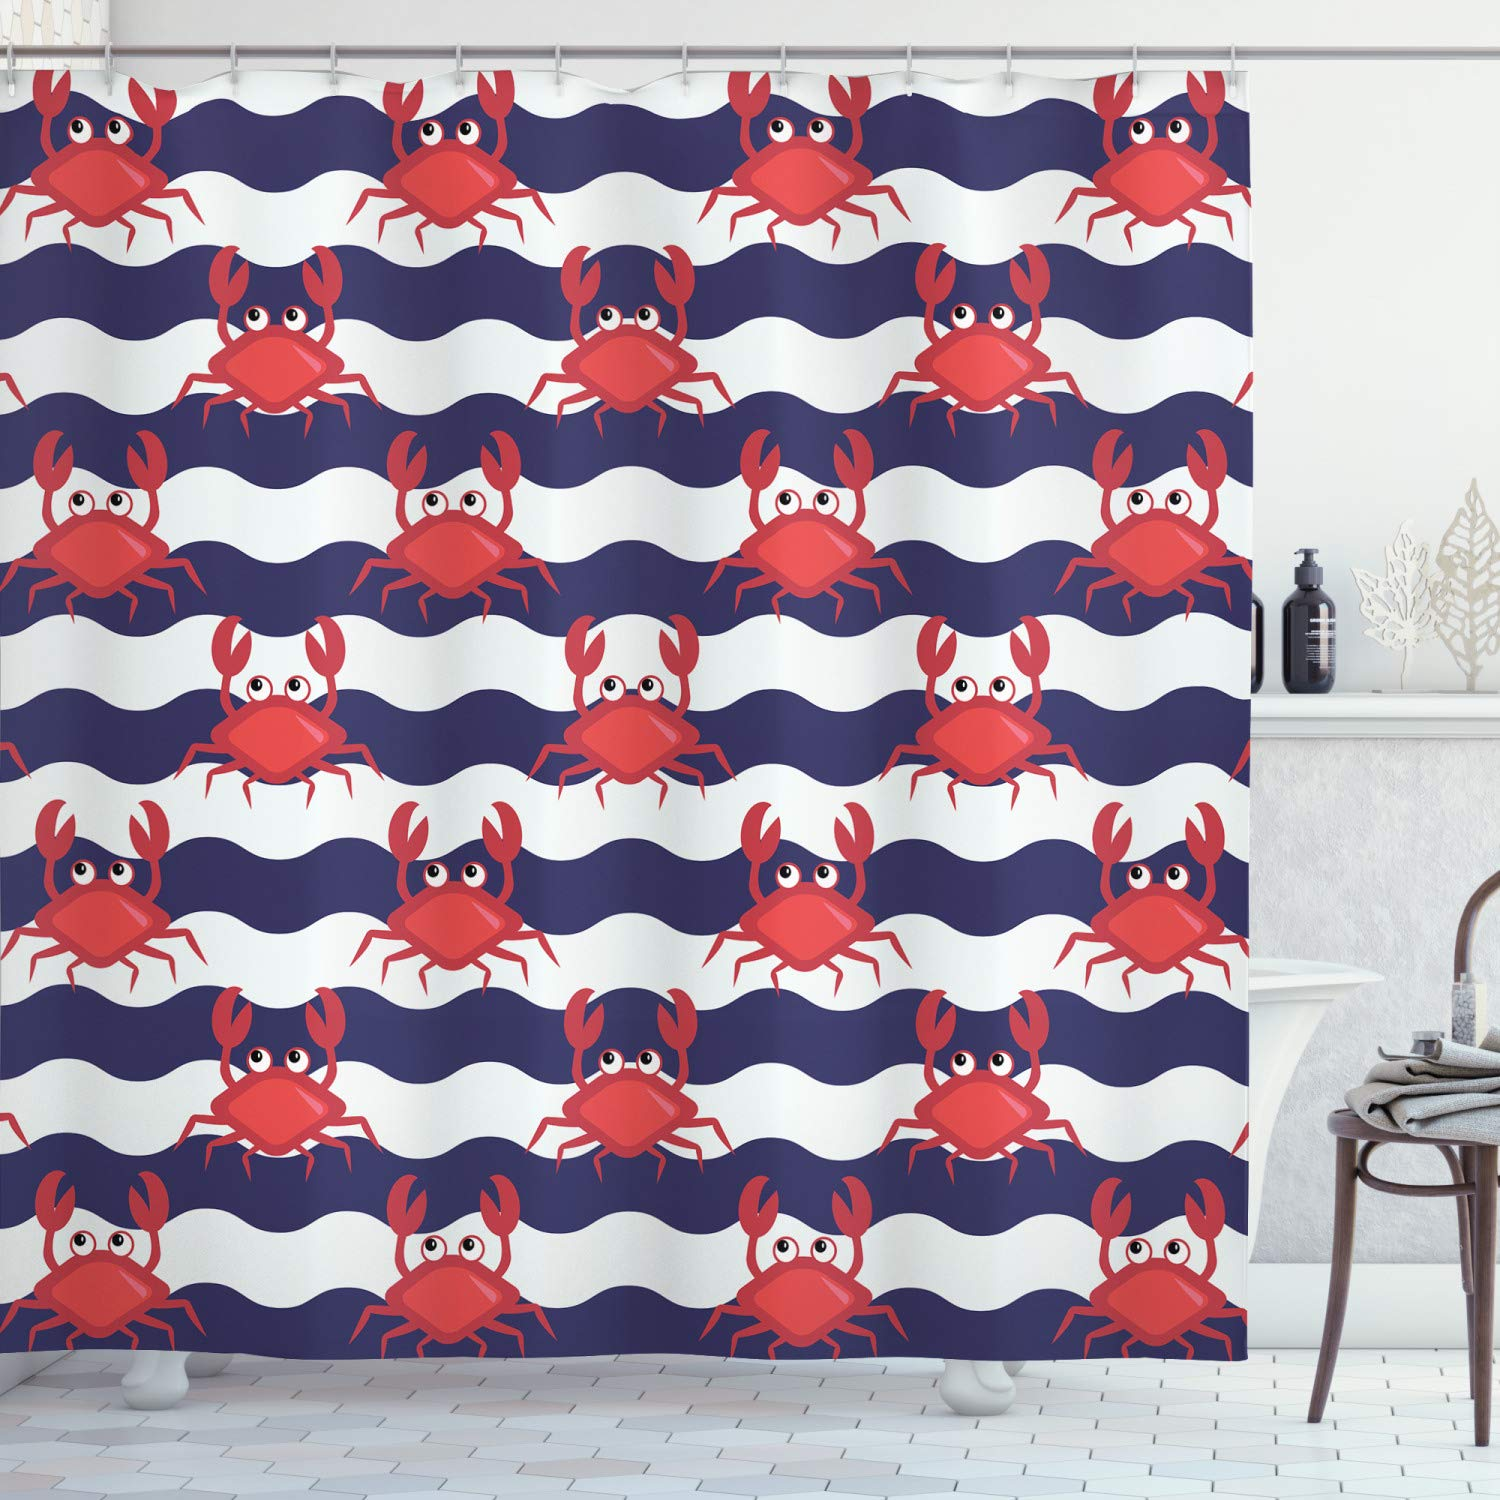 """Ambesonne Crabs Shower Curtain, Nautical Maritime Theme Crabs on Striped Background Illustration Print, Cloth Fabric Bathroom Decor Set with Hooks, 70"""" Long, Red Blue"""